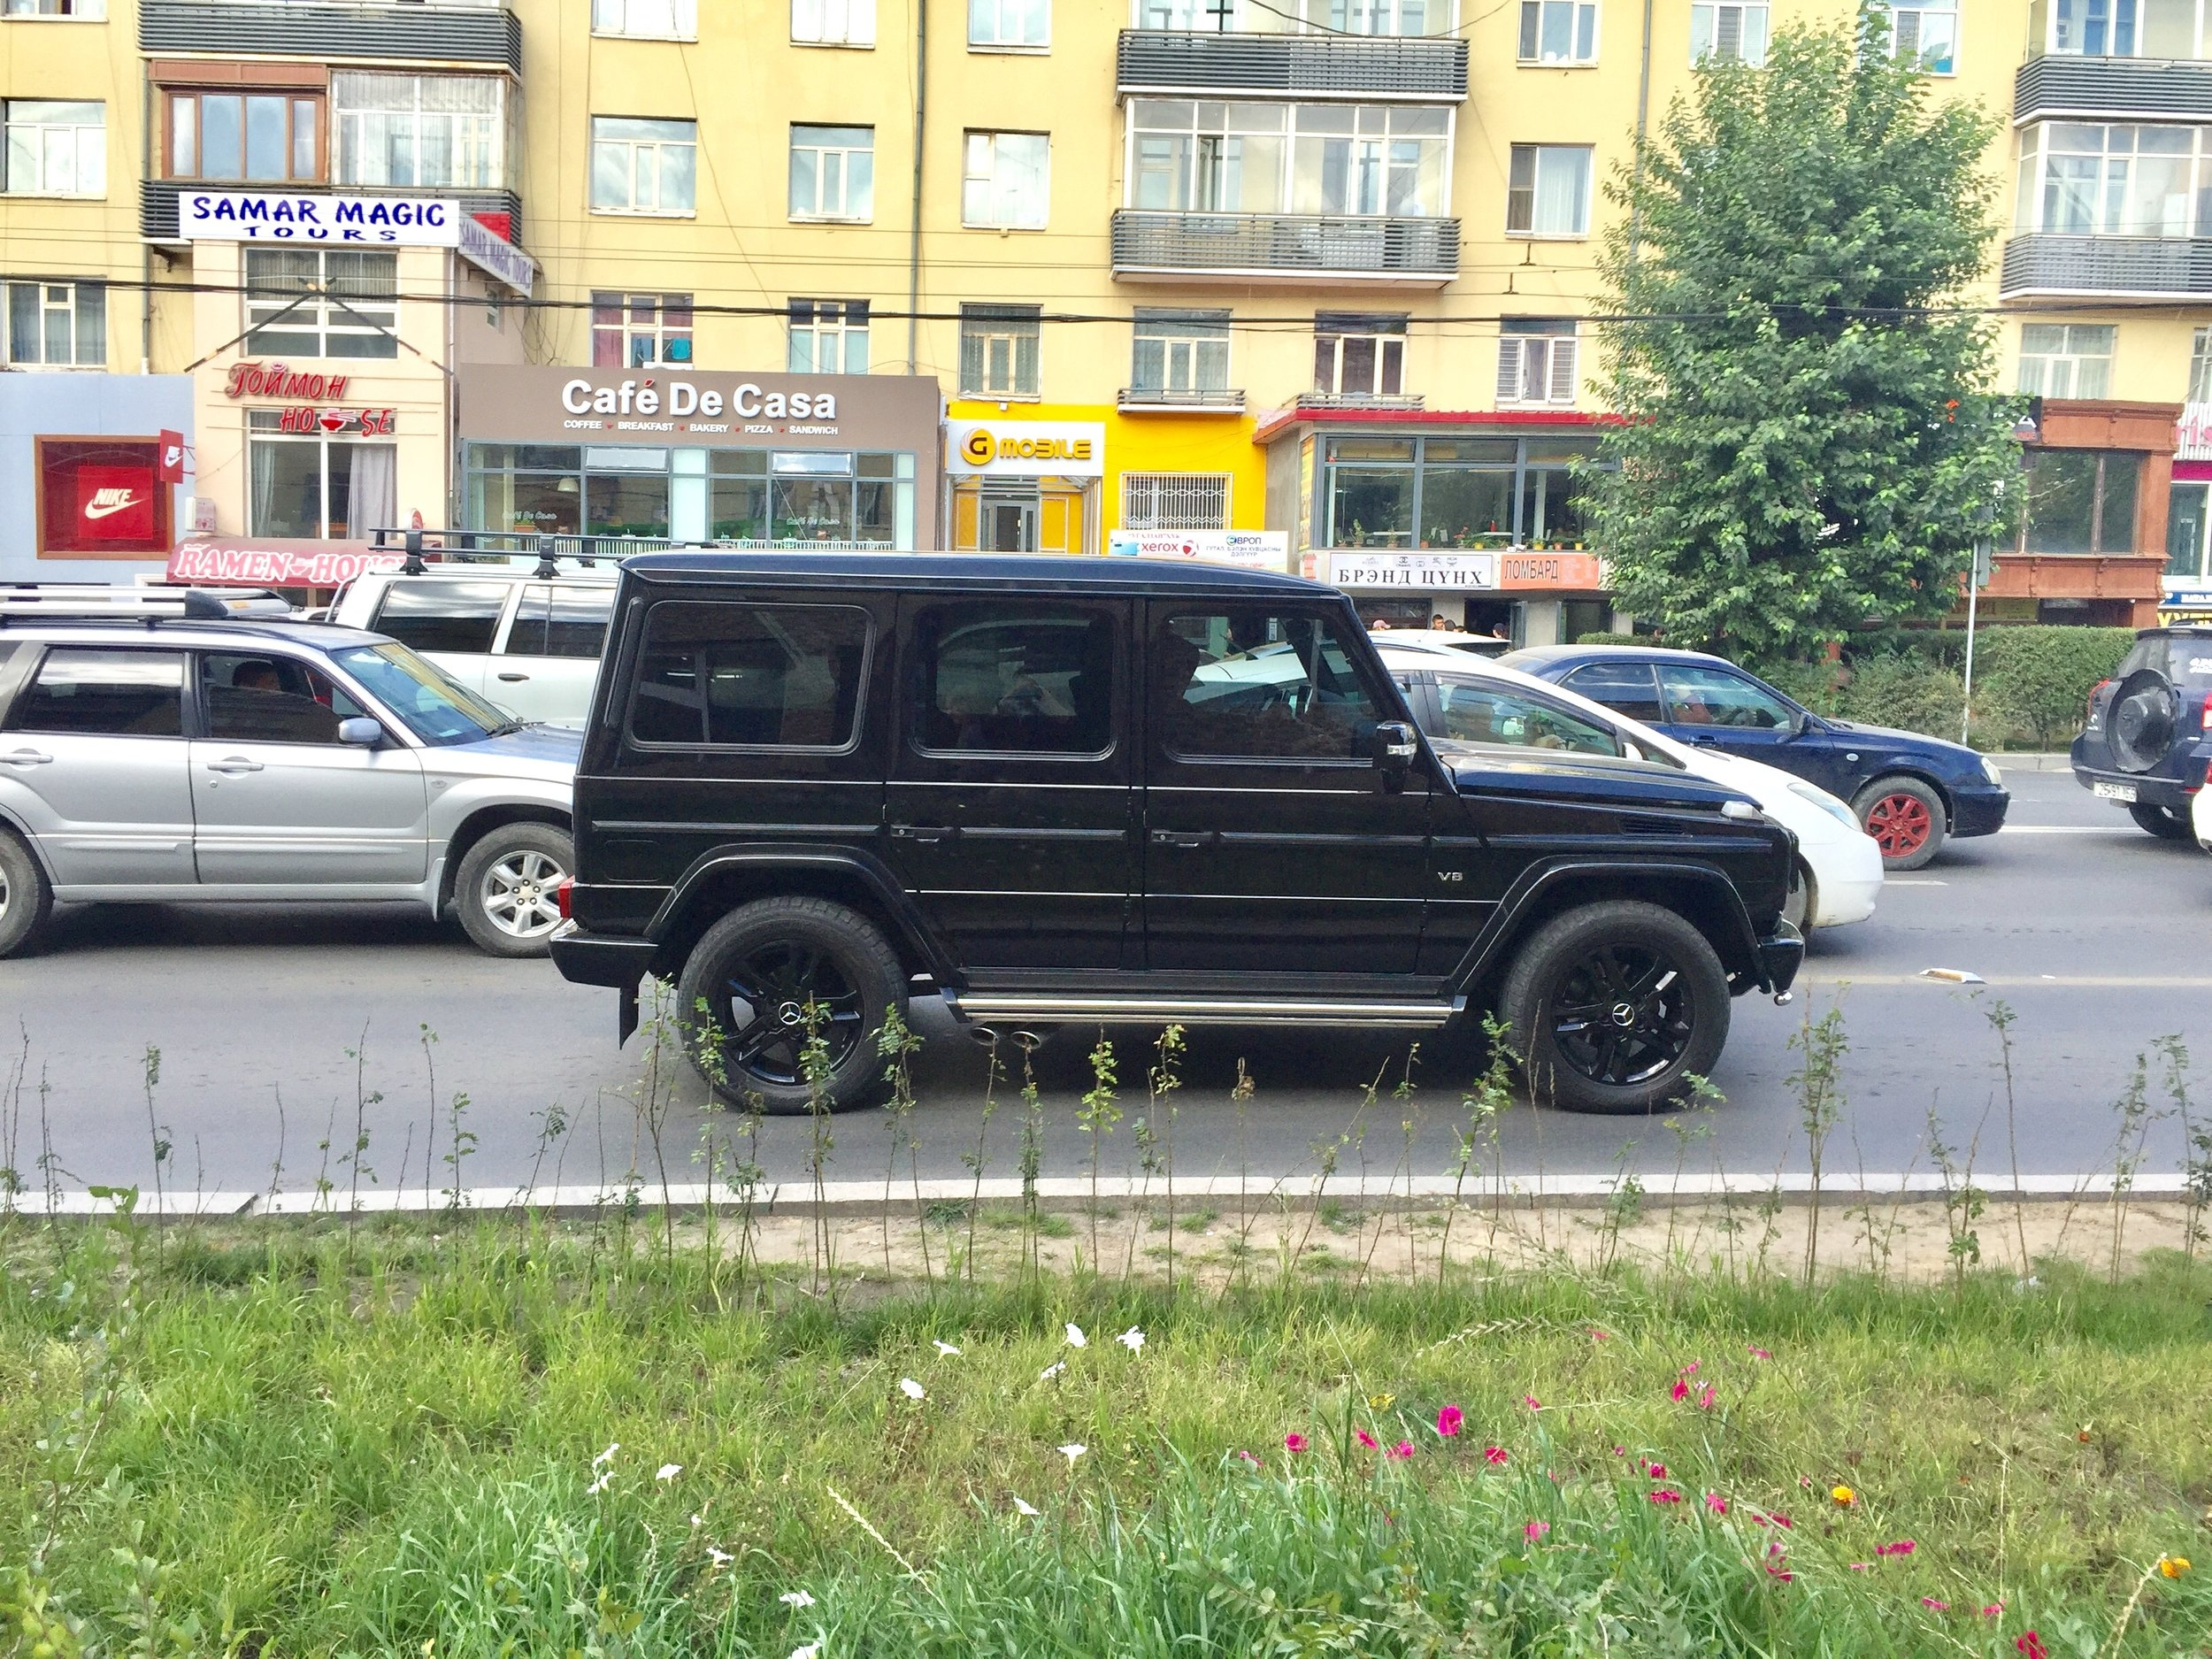 One of many Mercedes G-Wagens we spotted on the streets of Ulaanbaatar, Mongolia